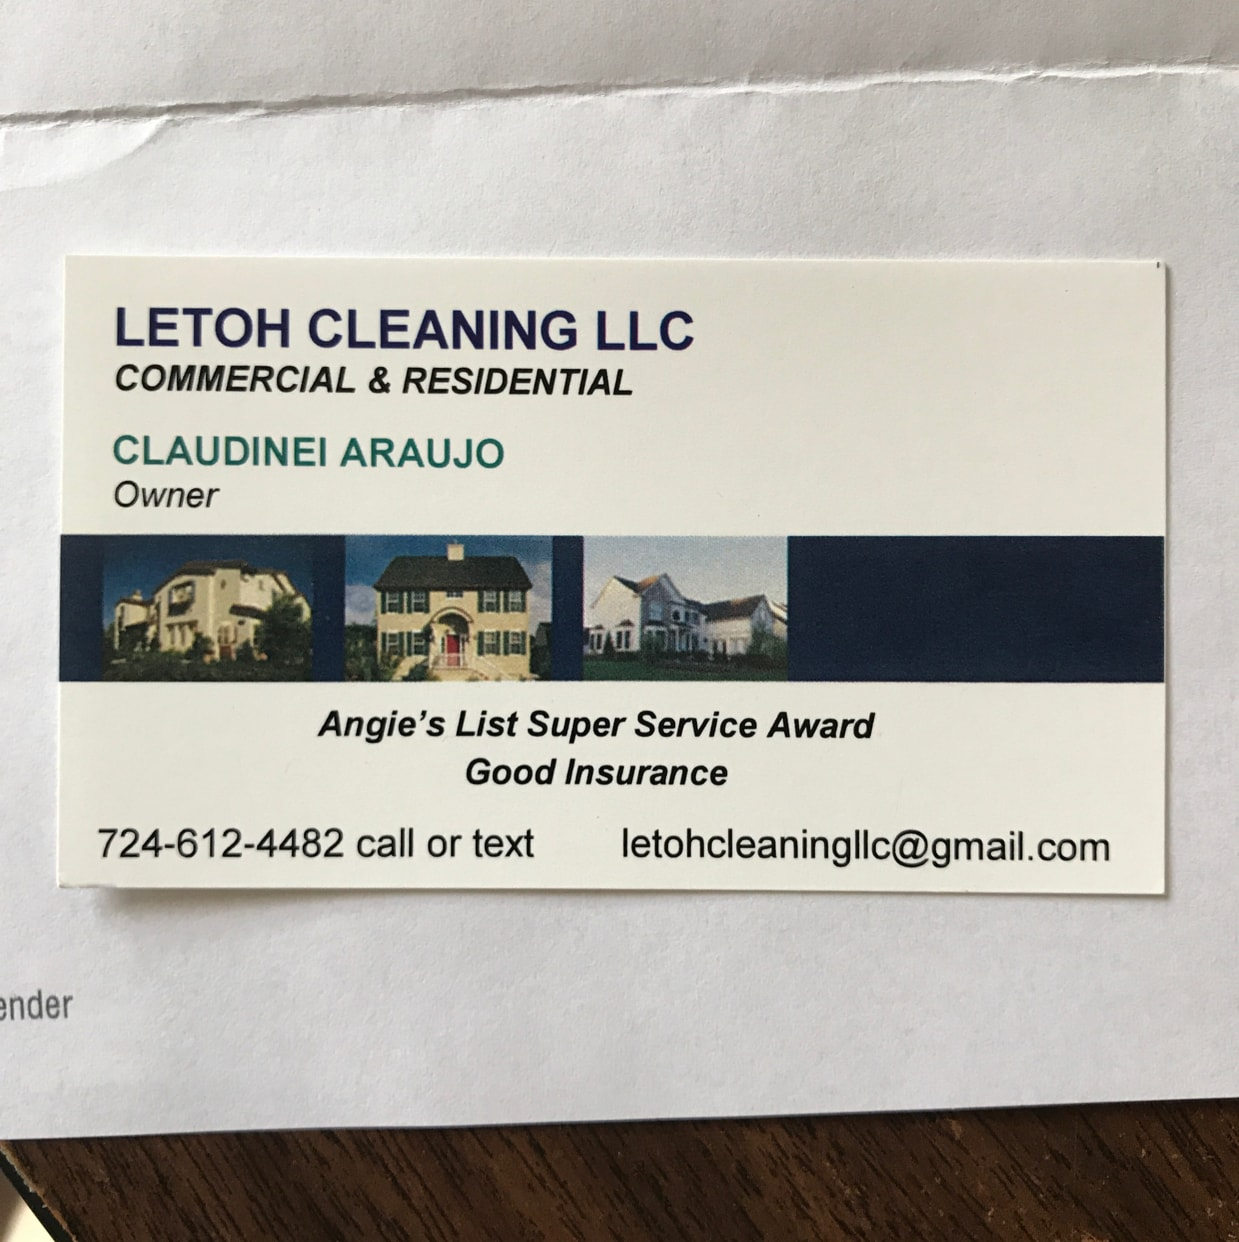 Letoh Cleaning LLC